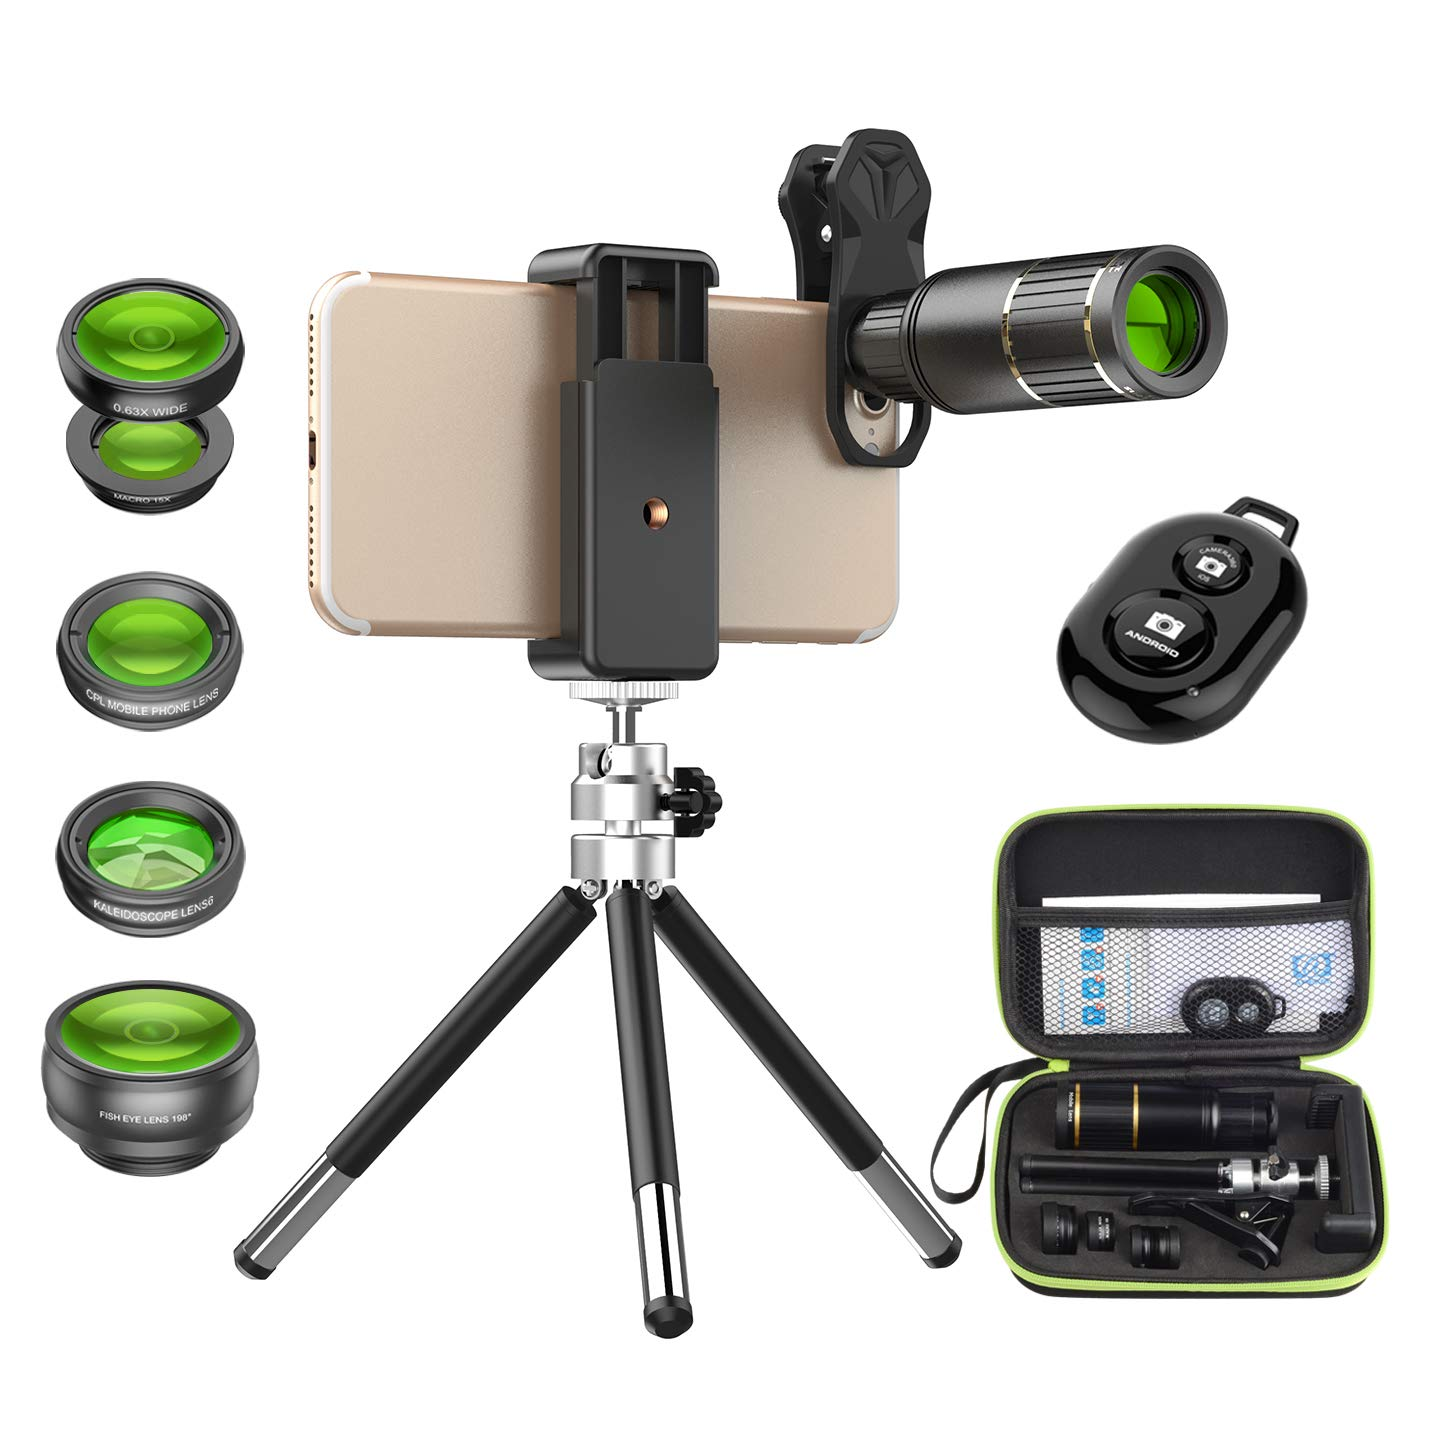 Apexel Cell Phone Camera Lens Kit -Remote Shutter+ Phone Tripod+ 6 in 1 Phone Lens Kit -Metal 16X Telephoto Zoom Lens/0.63x Wide Angle/Macro/198 Fisheye/Kaleidoscope/CPL for iPhone X 8 7 6 Plus Samsung Smartphone 16X104D5